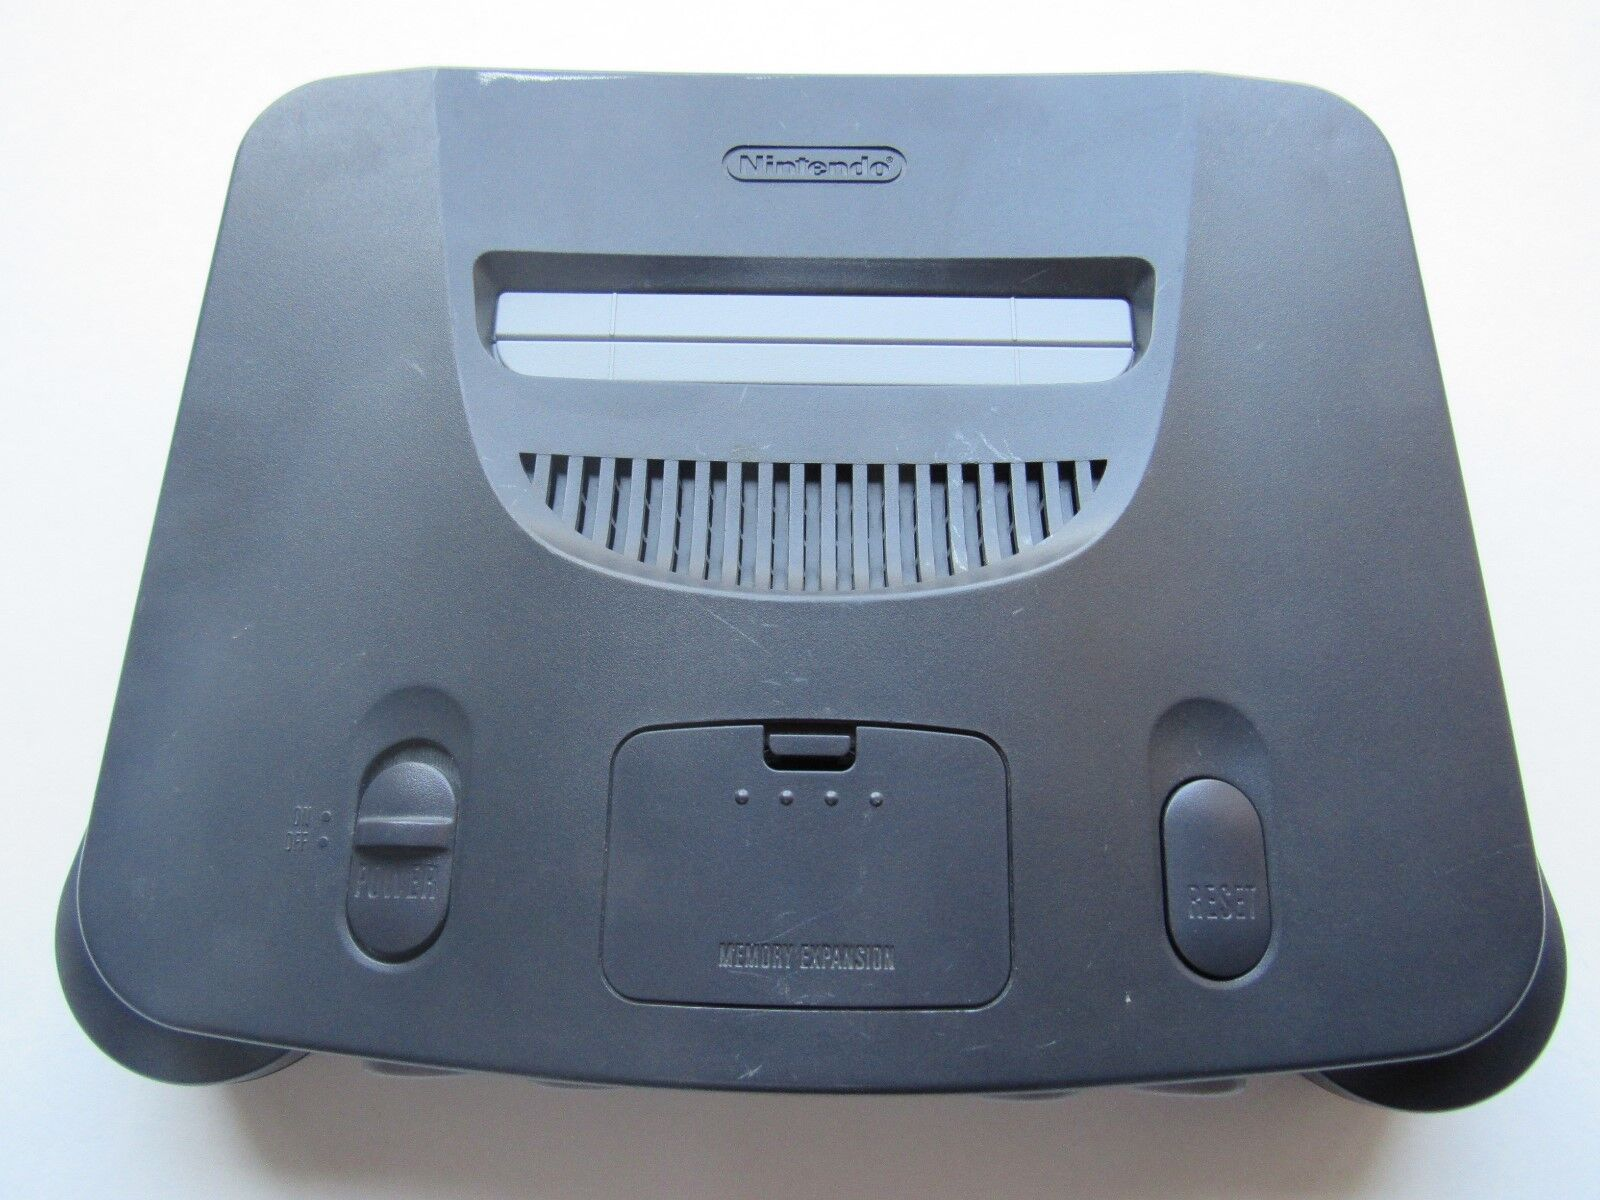 *GOOD* Nintendo 64 N64 Video Game Console Selection Funtastic Pokemon Gold PICK! Charcoal Grey *Console & Jumper Pack*